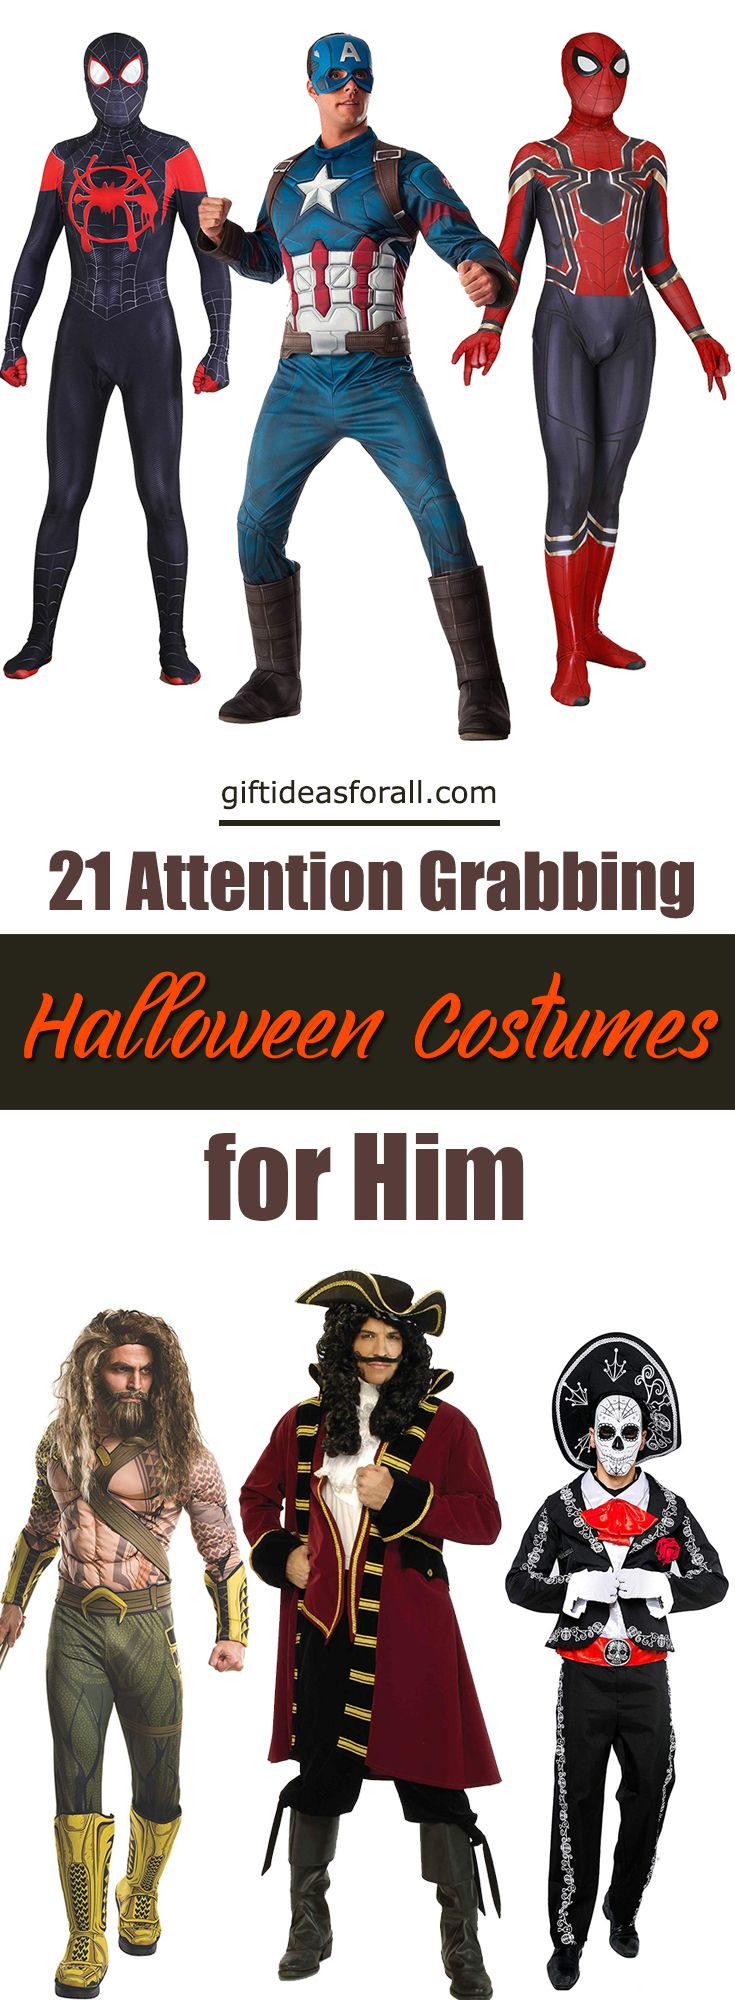 21 Attention-grabbing Halloween Costume Gift Ideas for Men #halloweencostumesformen